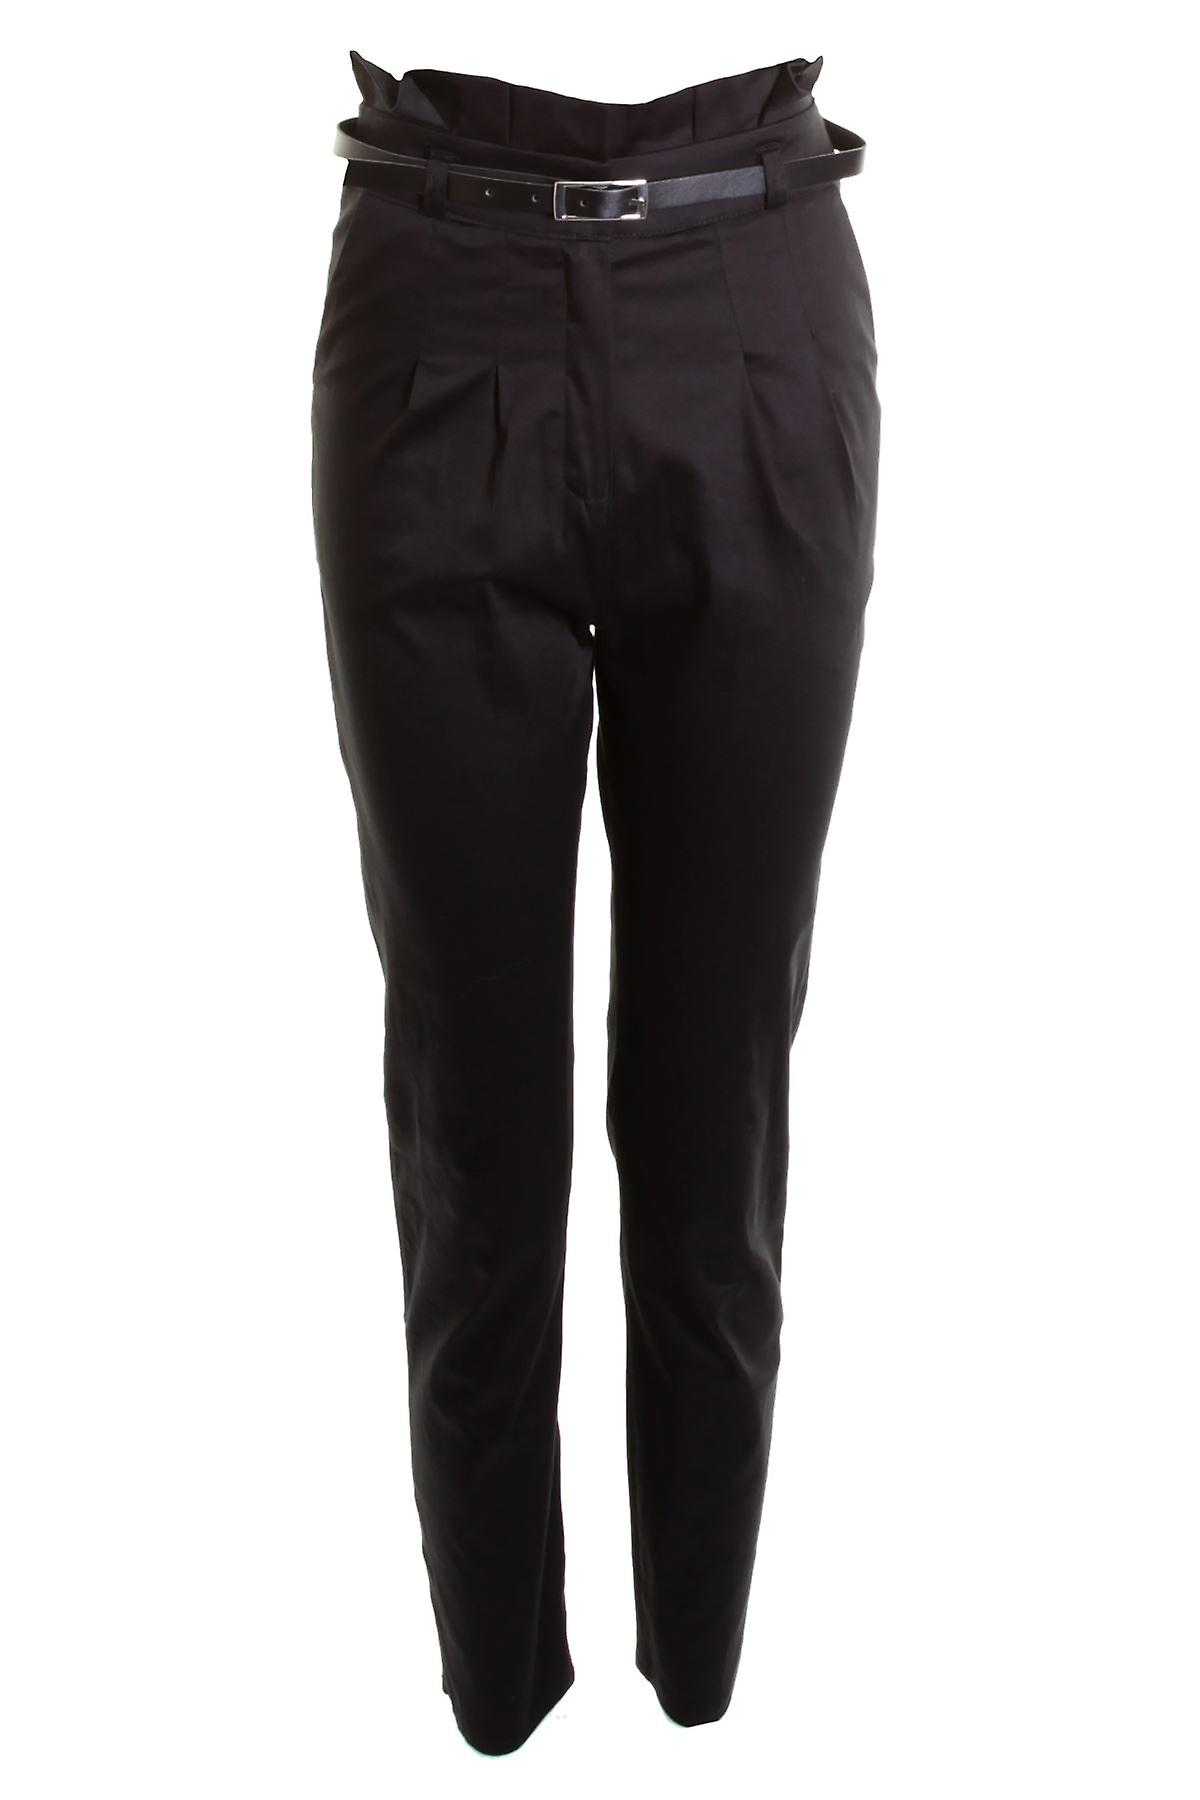 New Ladies Belted Chino Smart Straight School Girls Women's Trousers